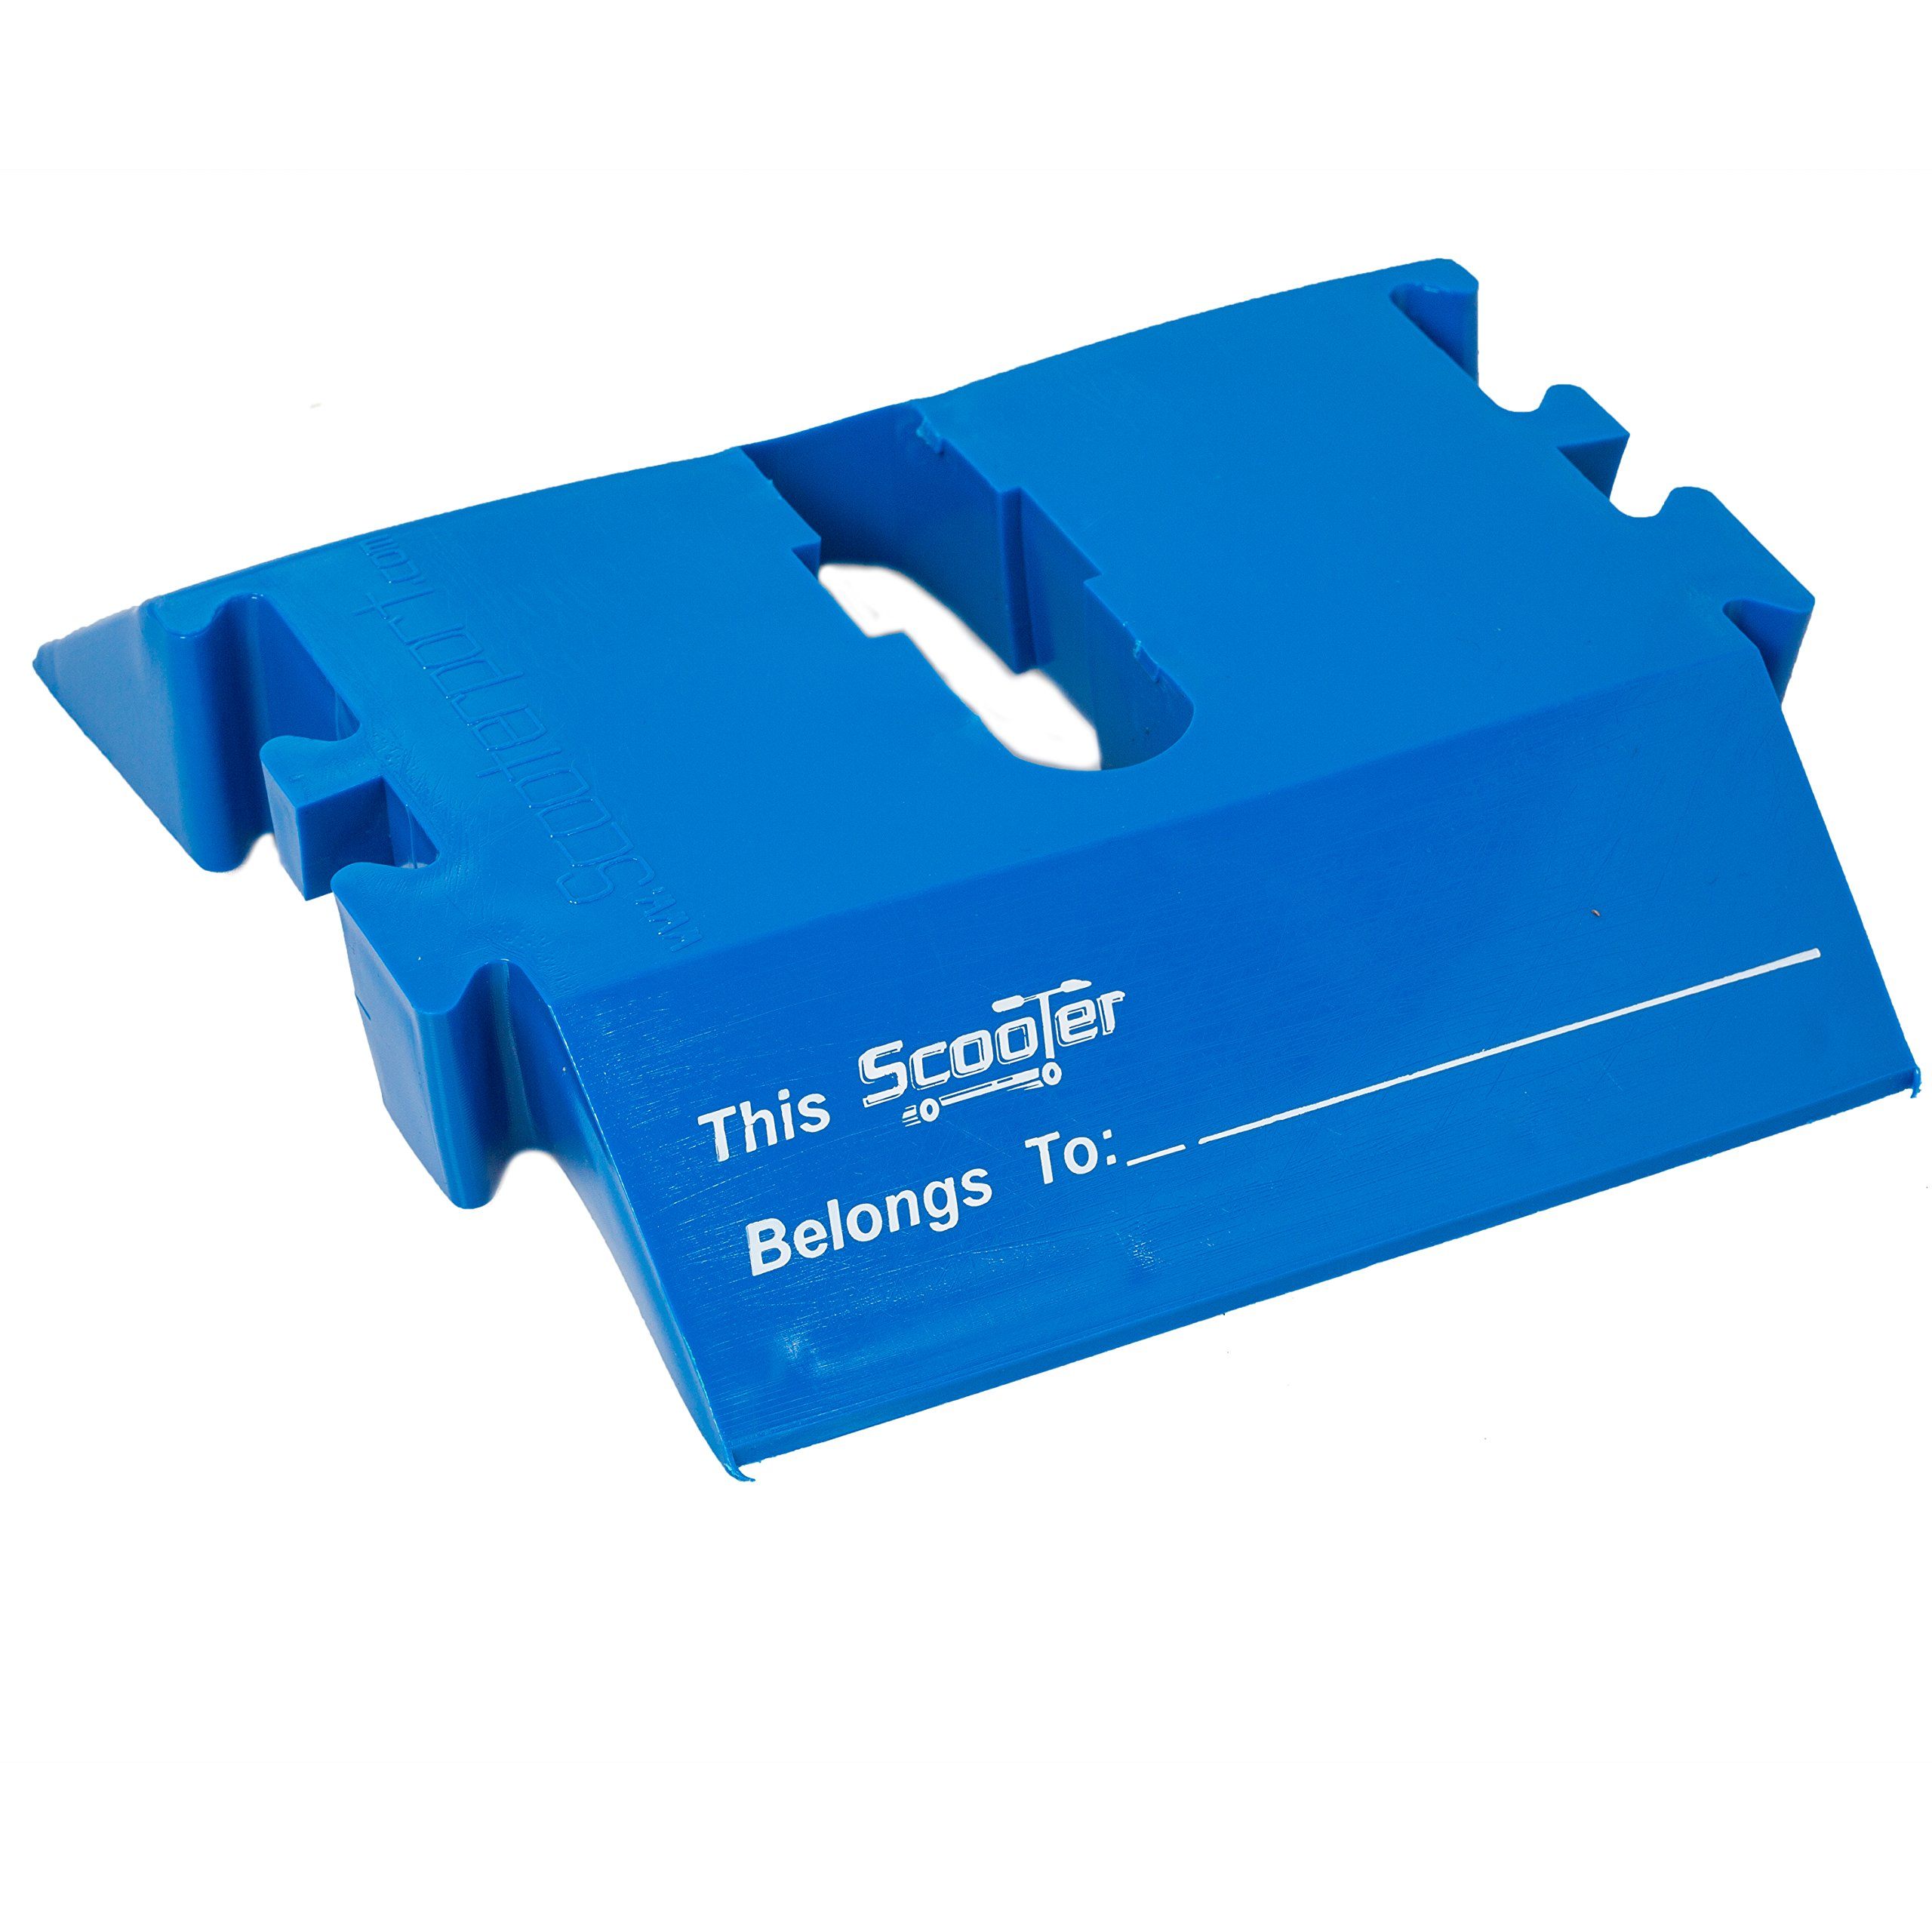 Scooter Stand By ScooterPorts - Fits Most Major Brands - Interlocking Design For Storage and Safety - Electric Blue